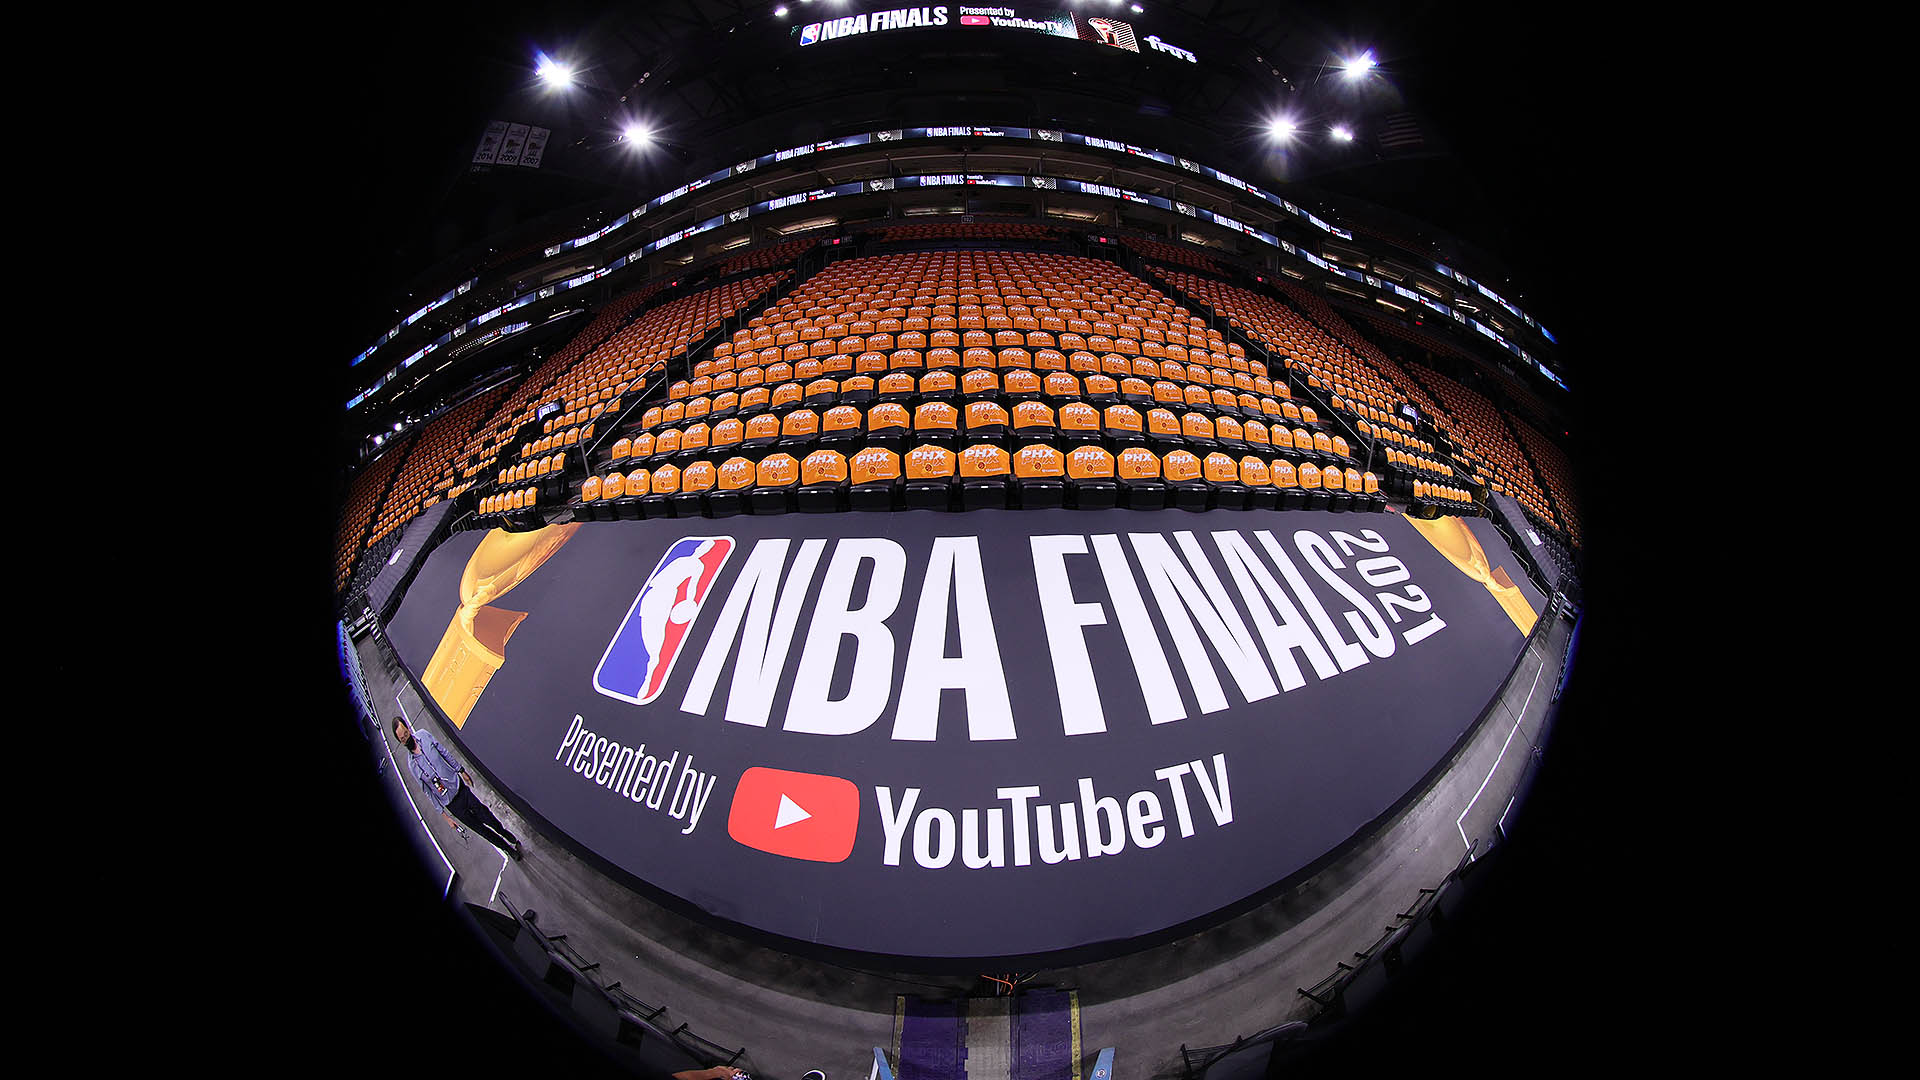 Viewership for The Finals up 41 percent from last year